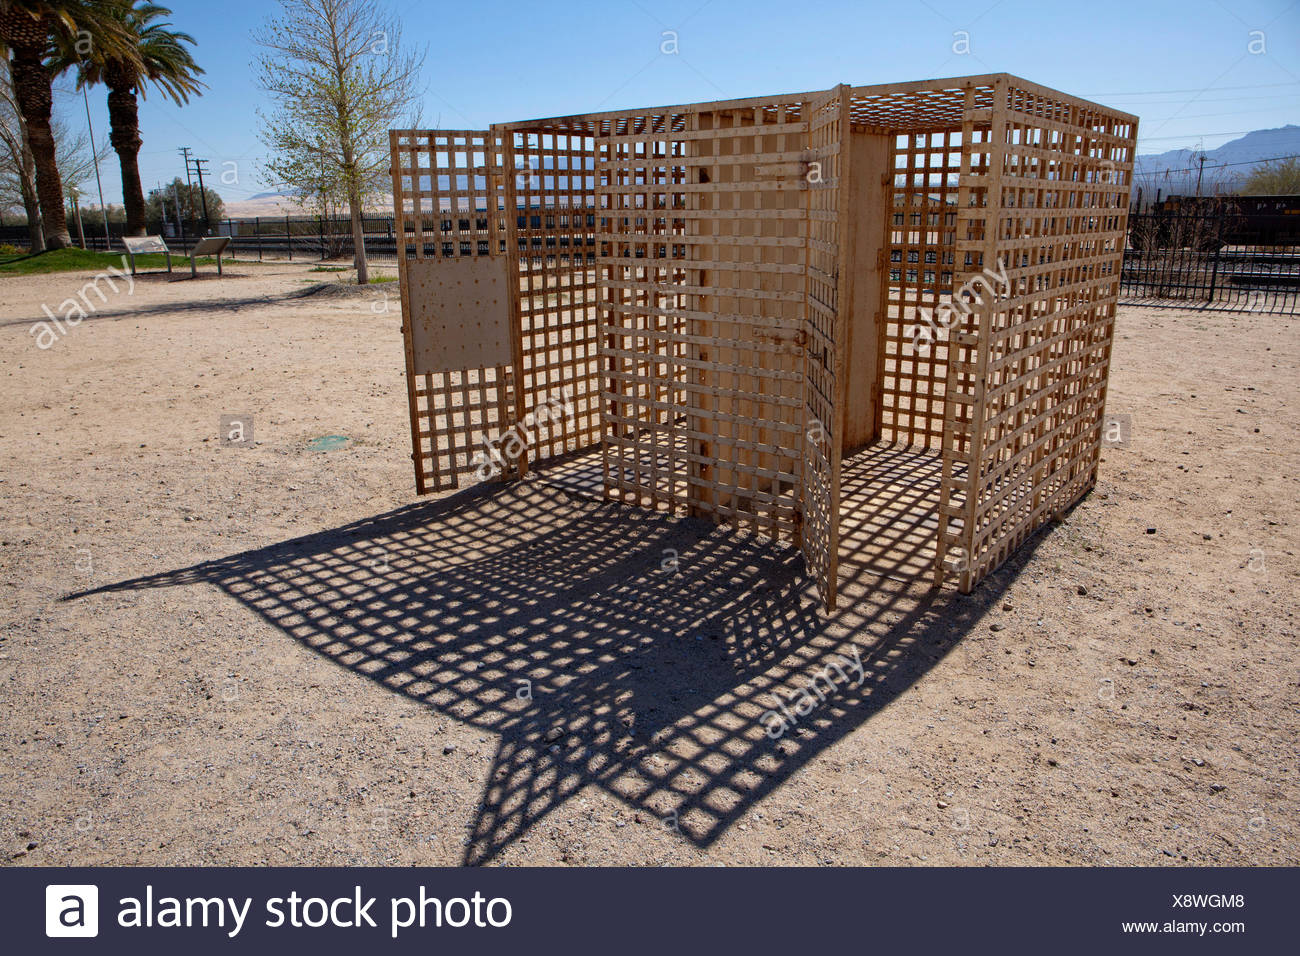 Former outdoor jail cells at the historic Kelso Train Station in Mojave National Preserve, California. Stock Photo